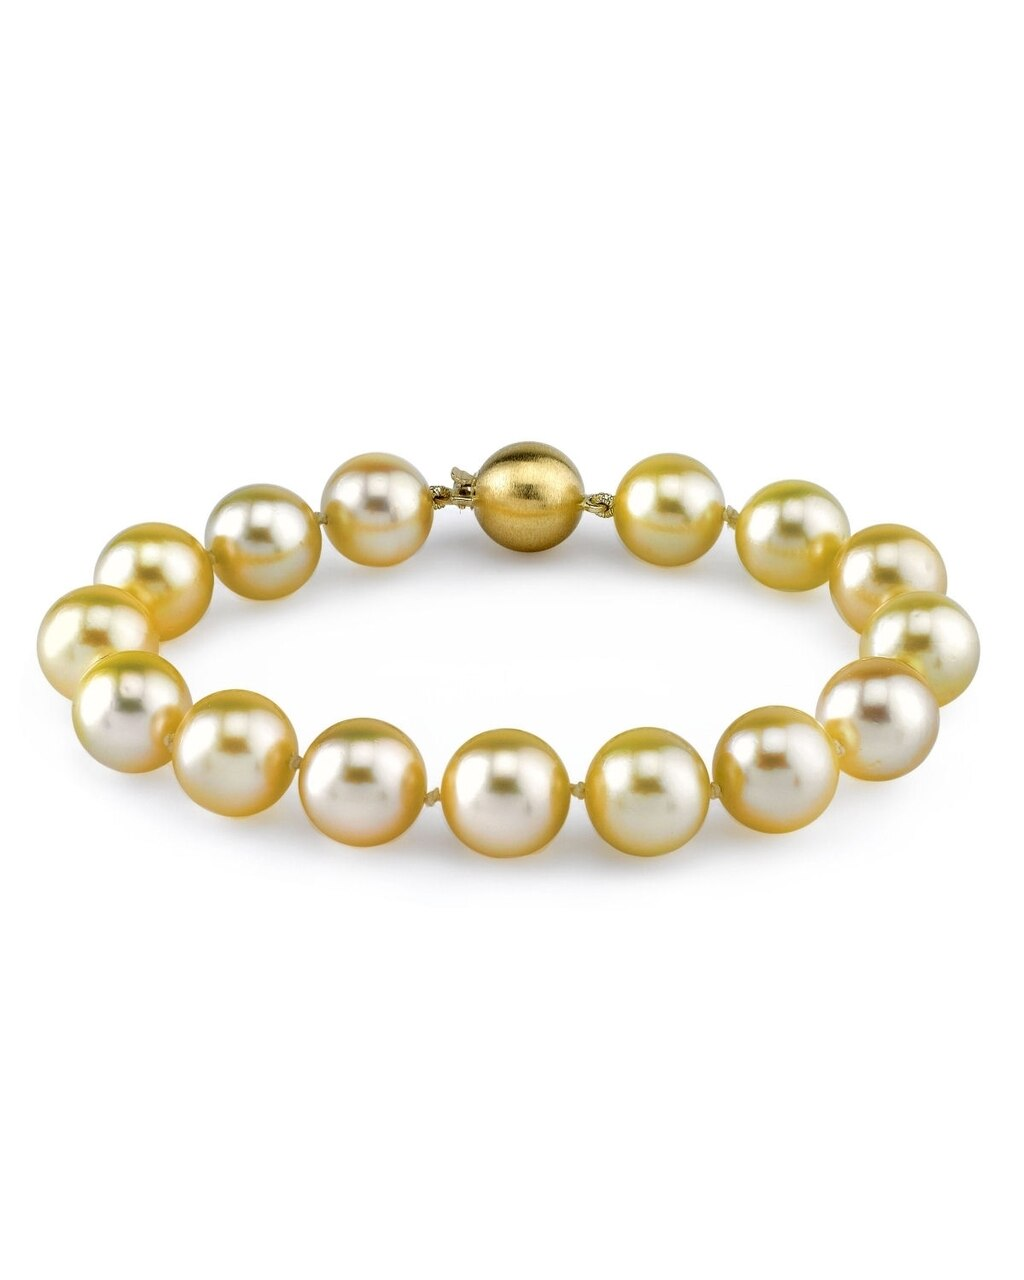 This elegant bracelet features 9.0-10.0mm Gold South Sea pearls, handpicked for their luminous luster